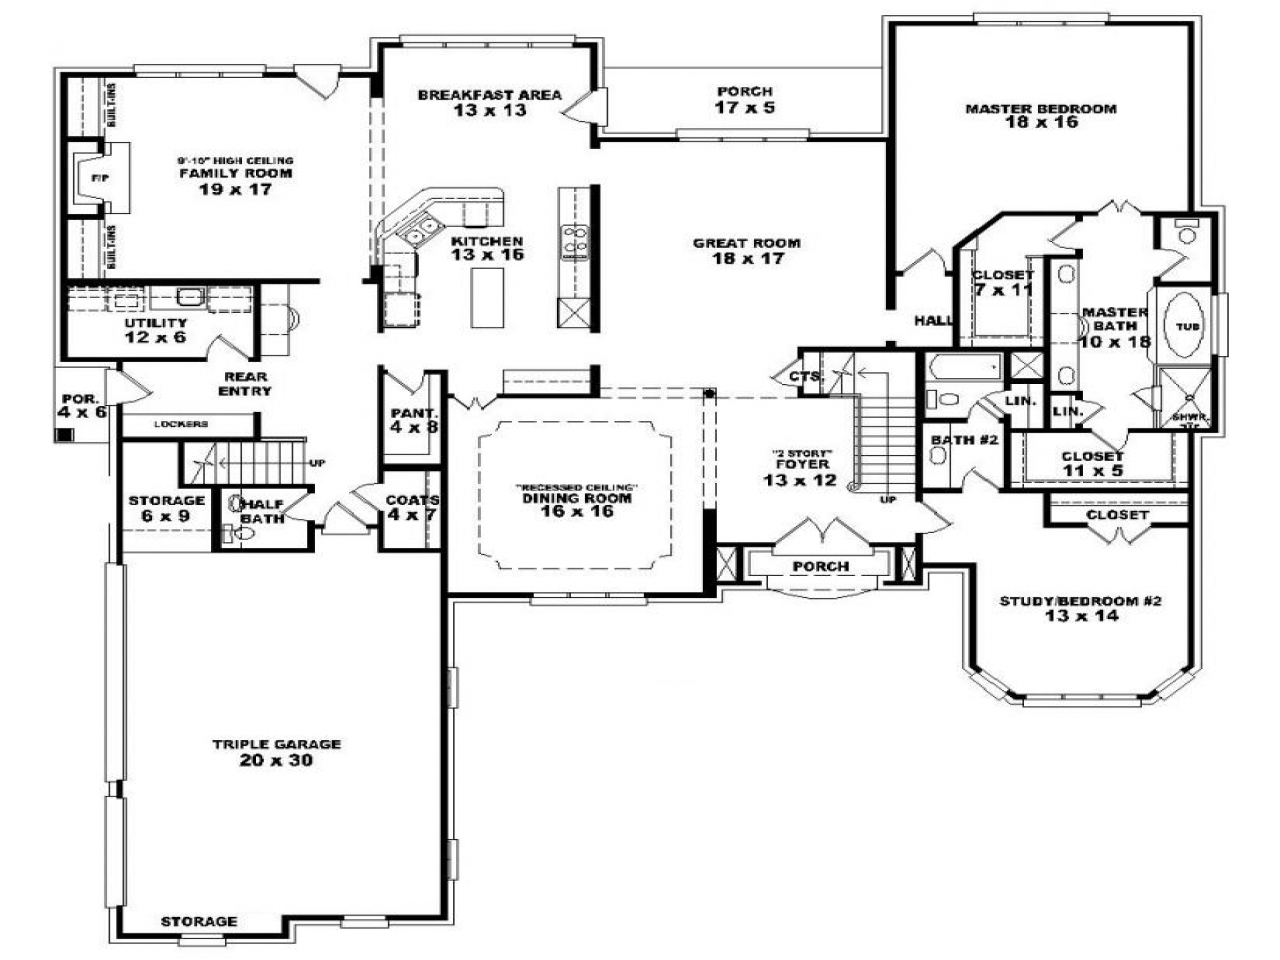 4 bedroom one story house plans our two bedroom story for Single bedroom house plans